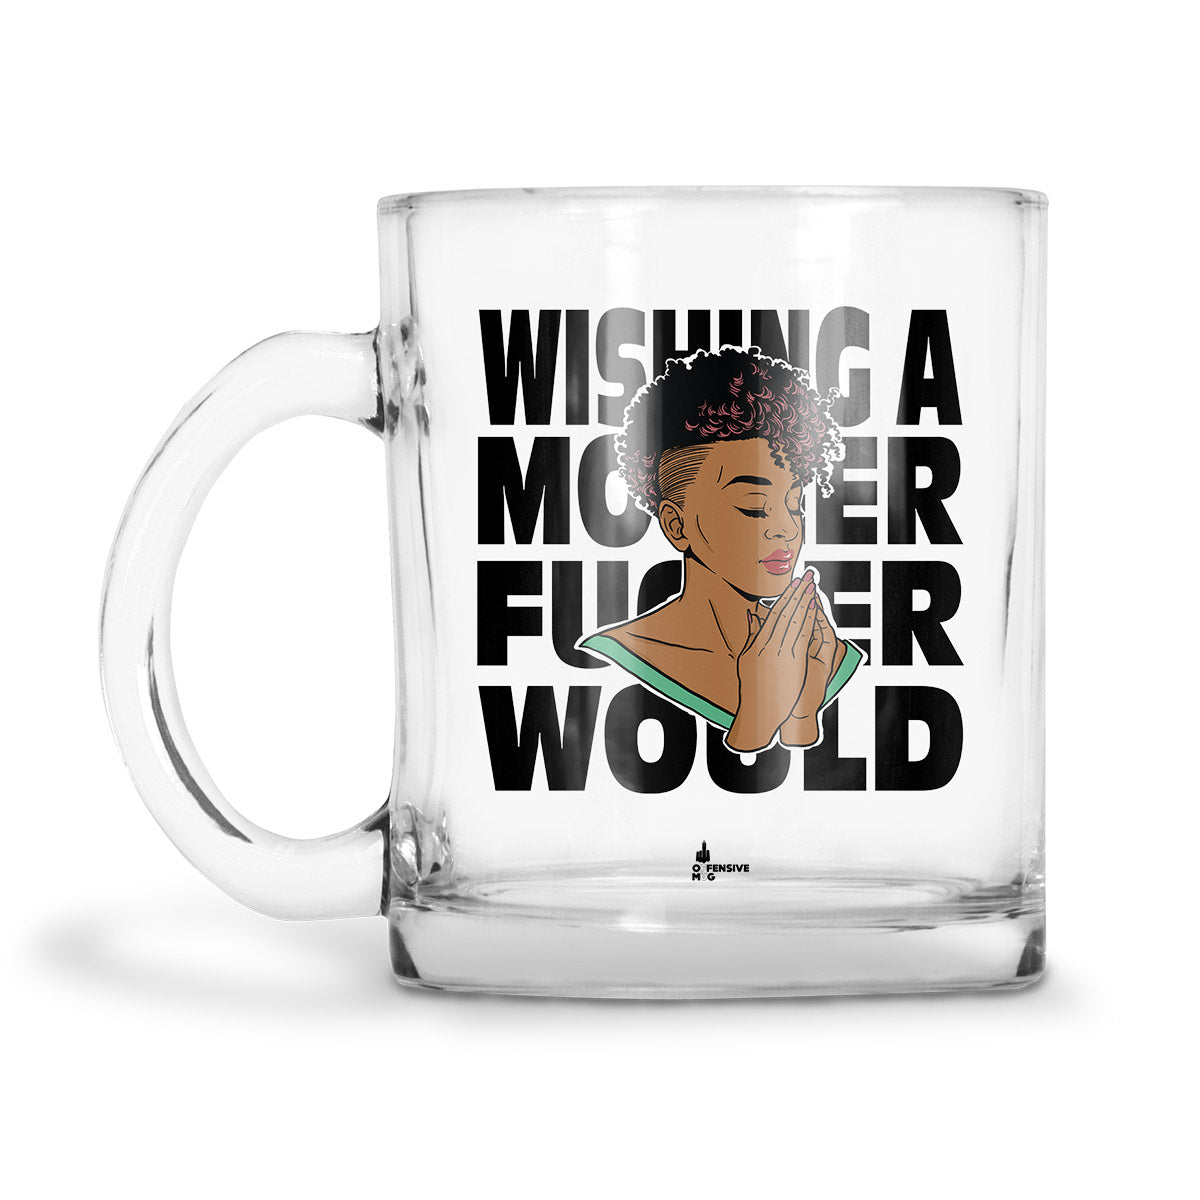 Rini Glass Mug - Offensive Mug